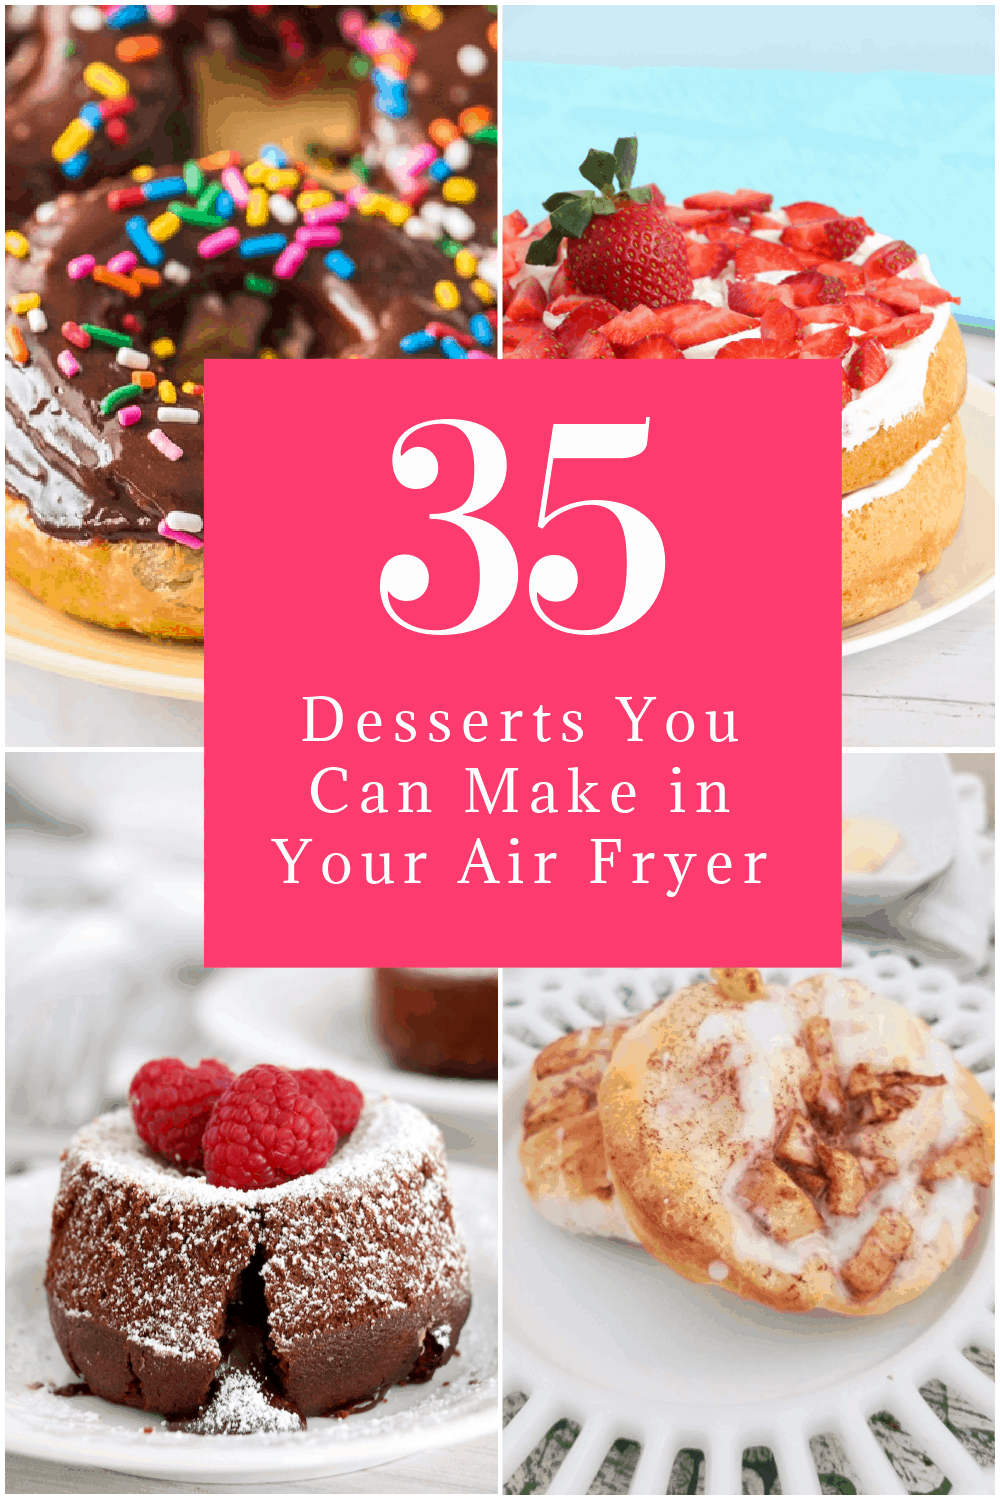 Looking for some tasty air fryer dessert recipes? I've got you covered! Keep reading to discover 35 incredibly delicious (and sometimes, even relatively healthy) tasty treats that you can make in an Air Fryer or Ninja Foodie!